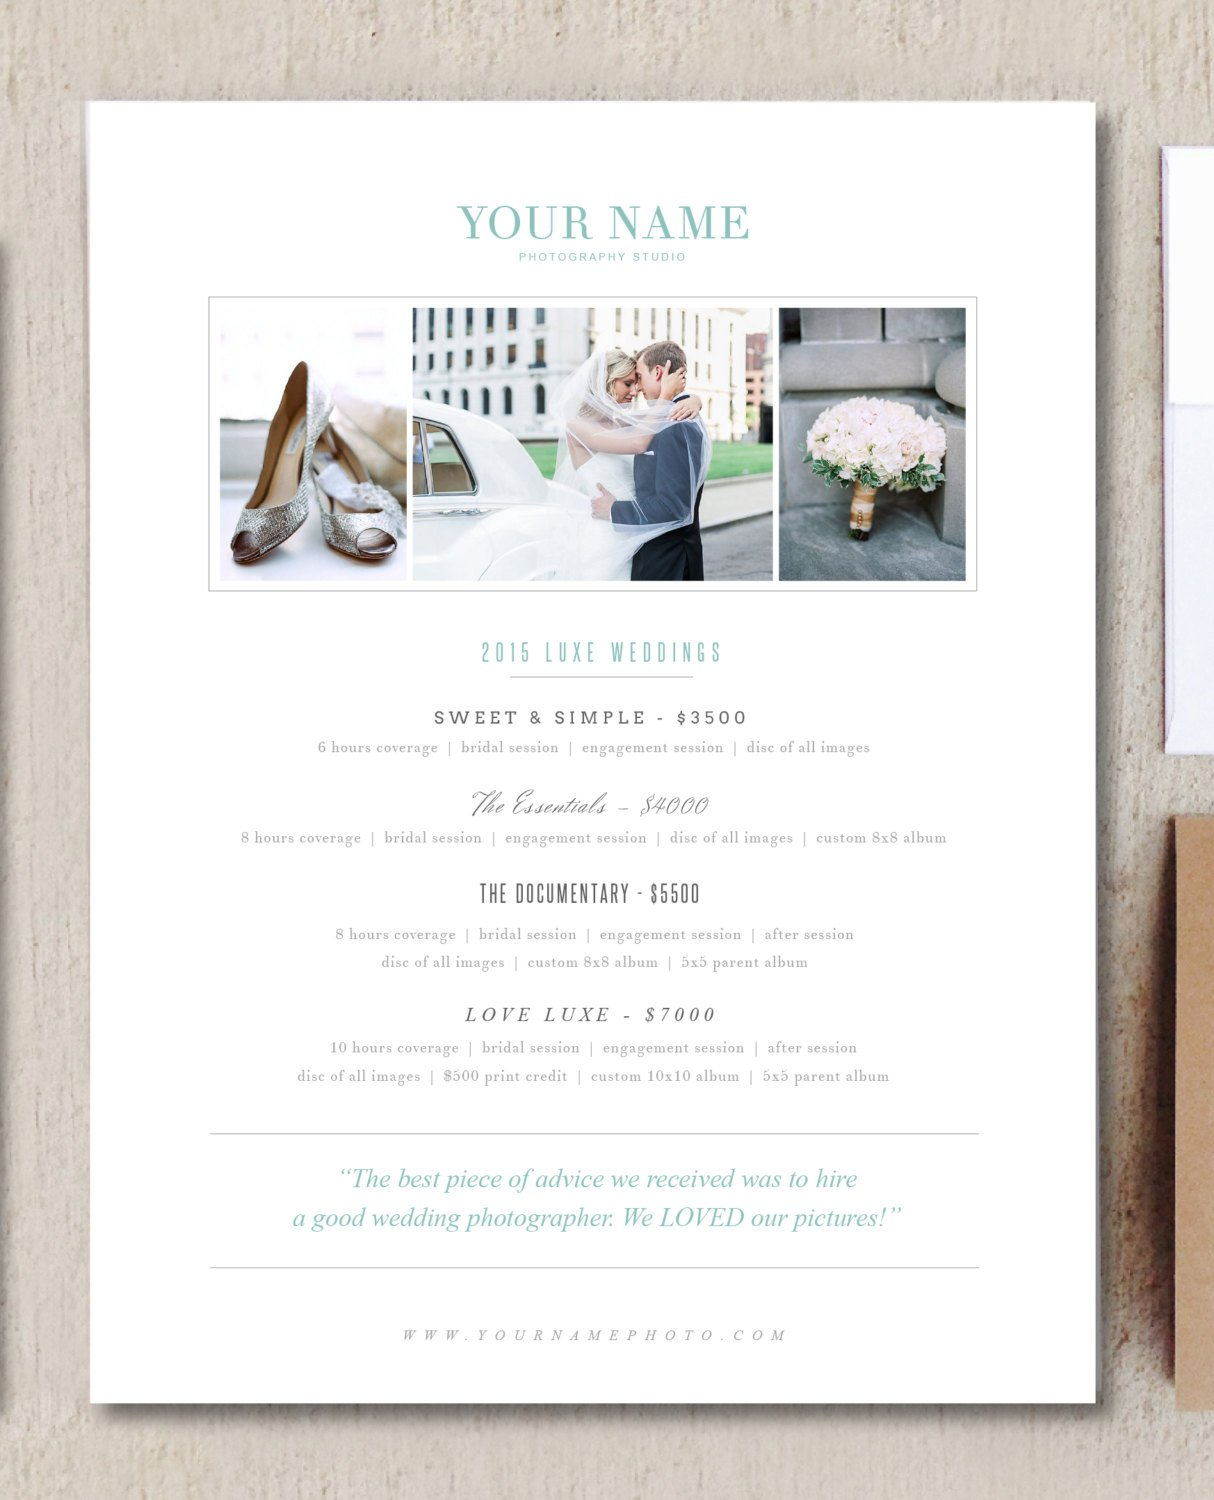 Wedding Photographer Pricing Guide Brochure Templates Creative - Free pricing template for photographers